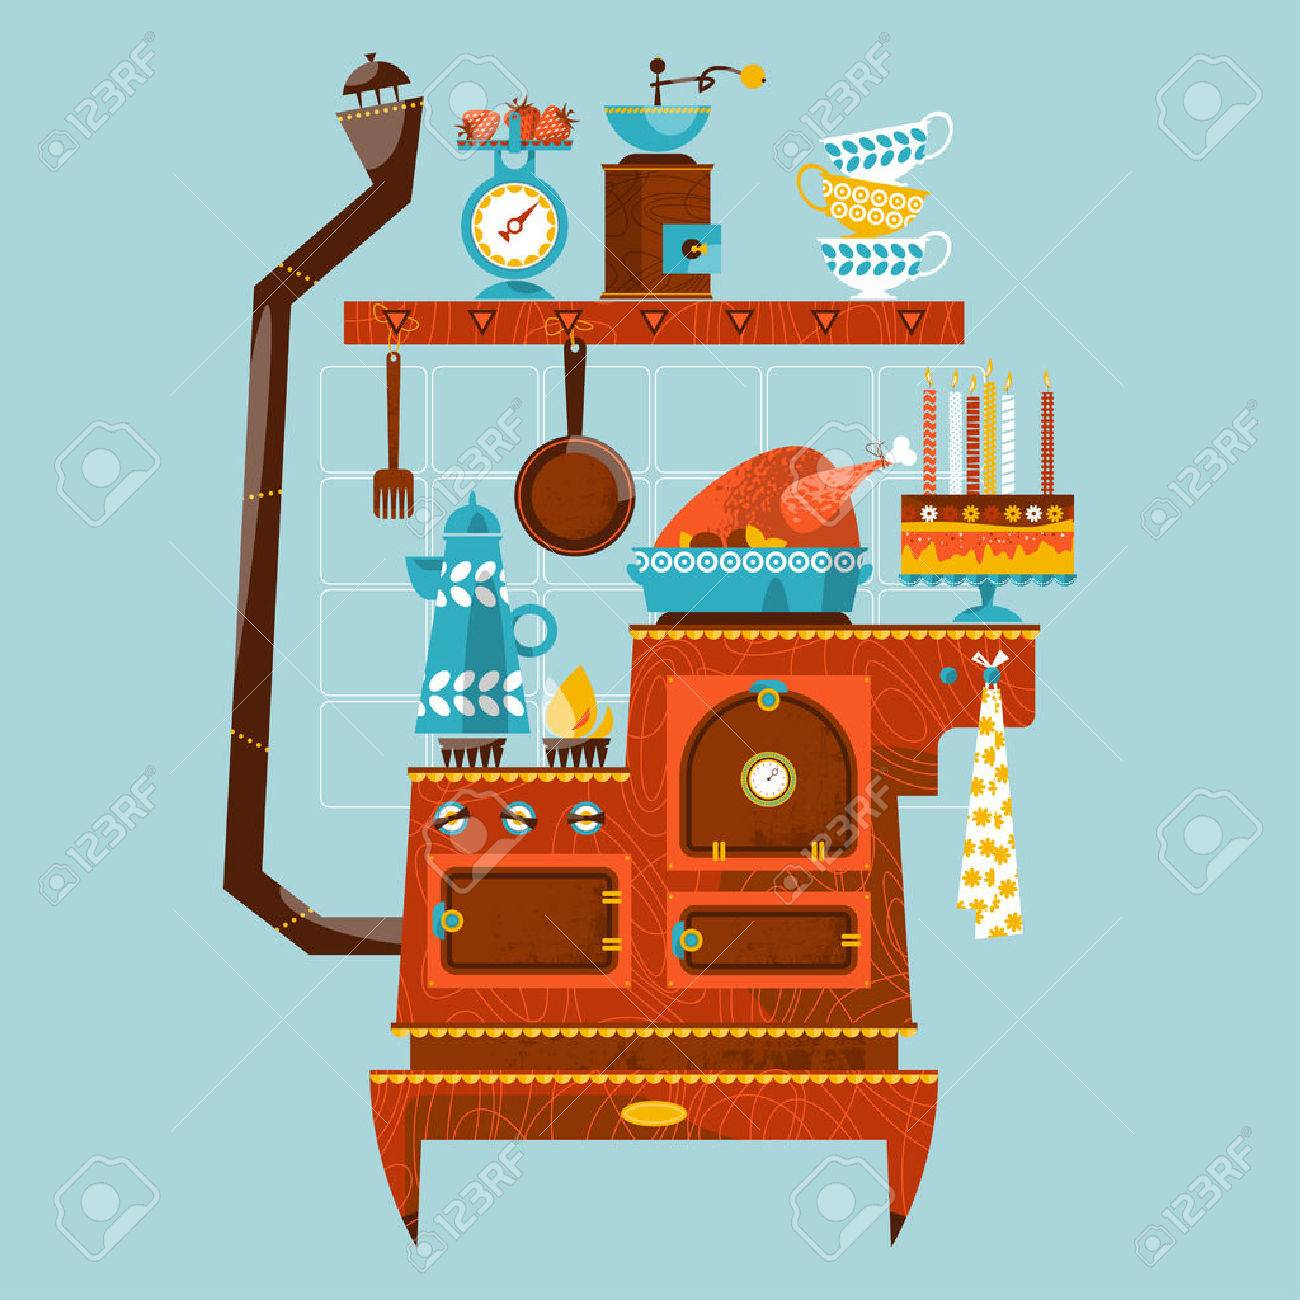 Retro Style Kitchen Appliance Retro Style Stove With Vintage Kitchen Appliances Utensils